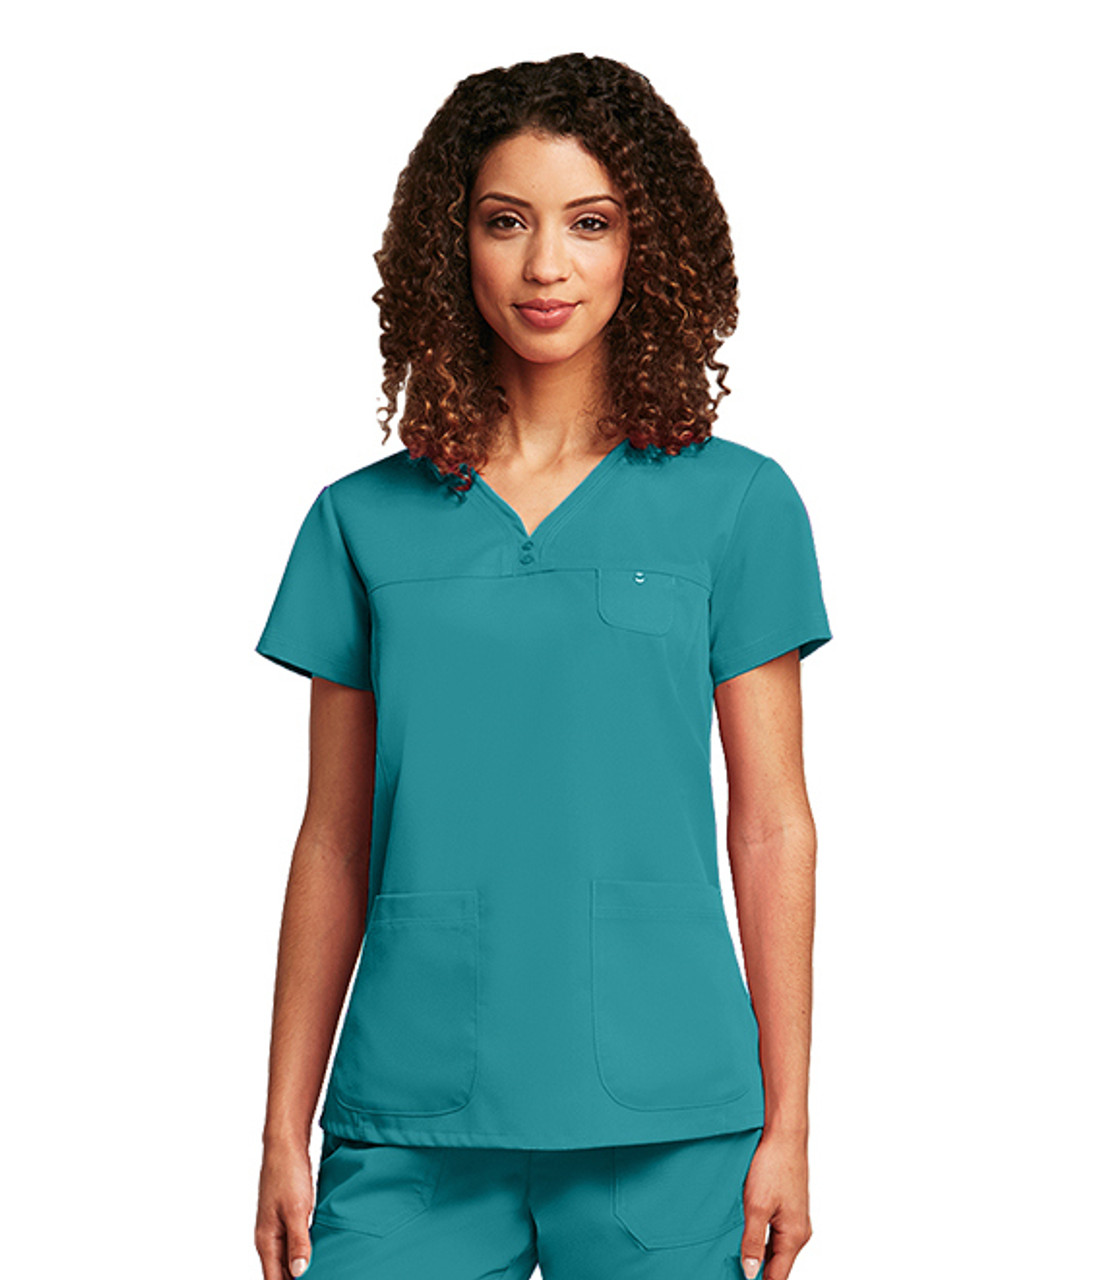 41340) - Grey\'s Anatomy Scrubs - 3 Pocket V-Neck Tonal Stitch Scrub ...